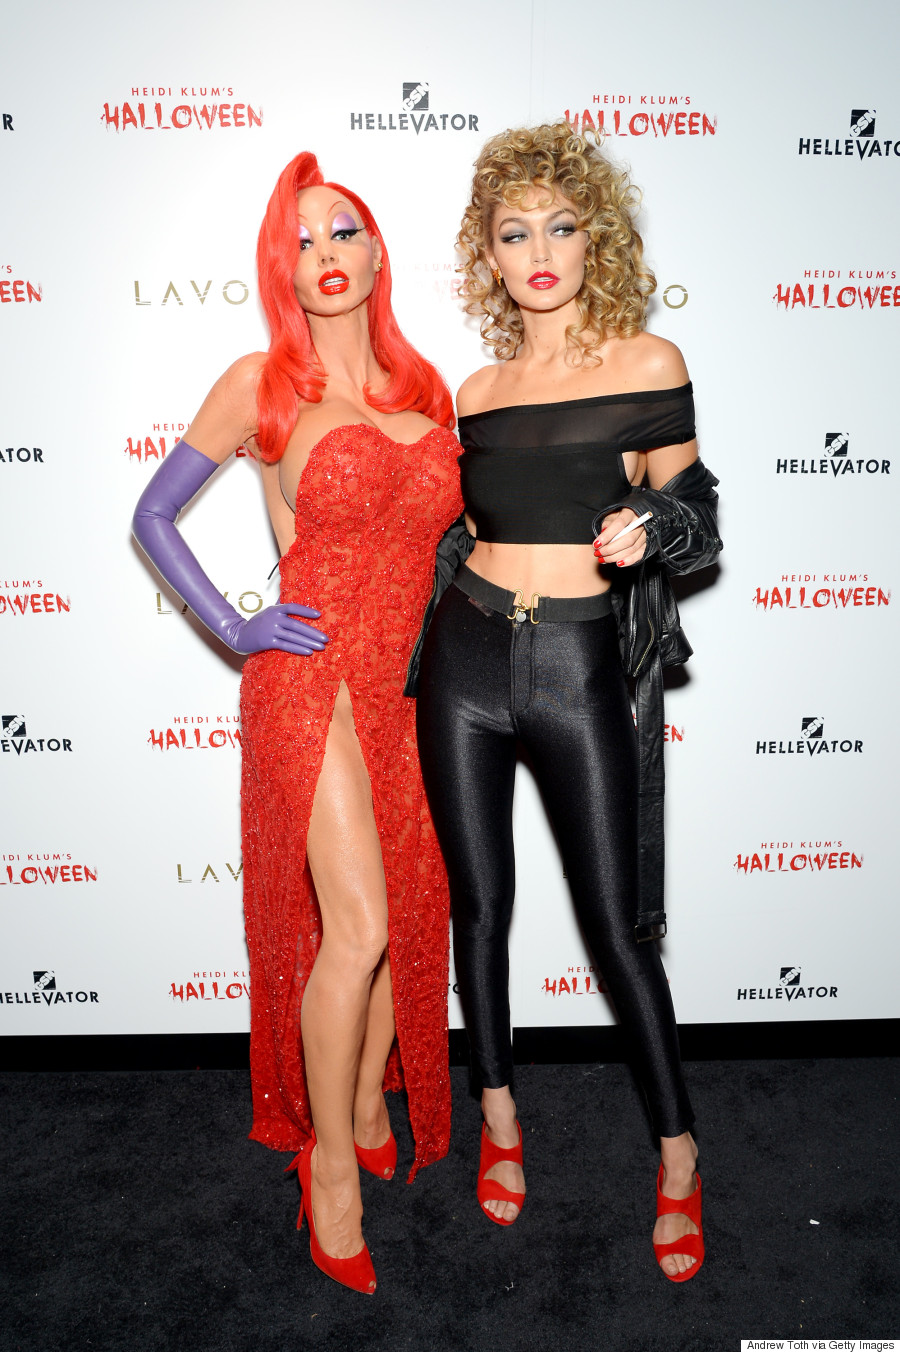 halloween 2015: the best celebrity costumes | huffpost canada